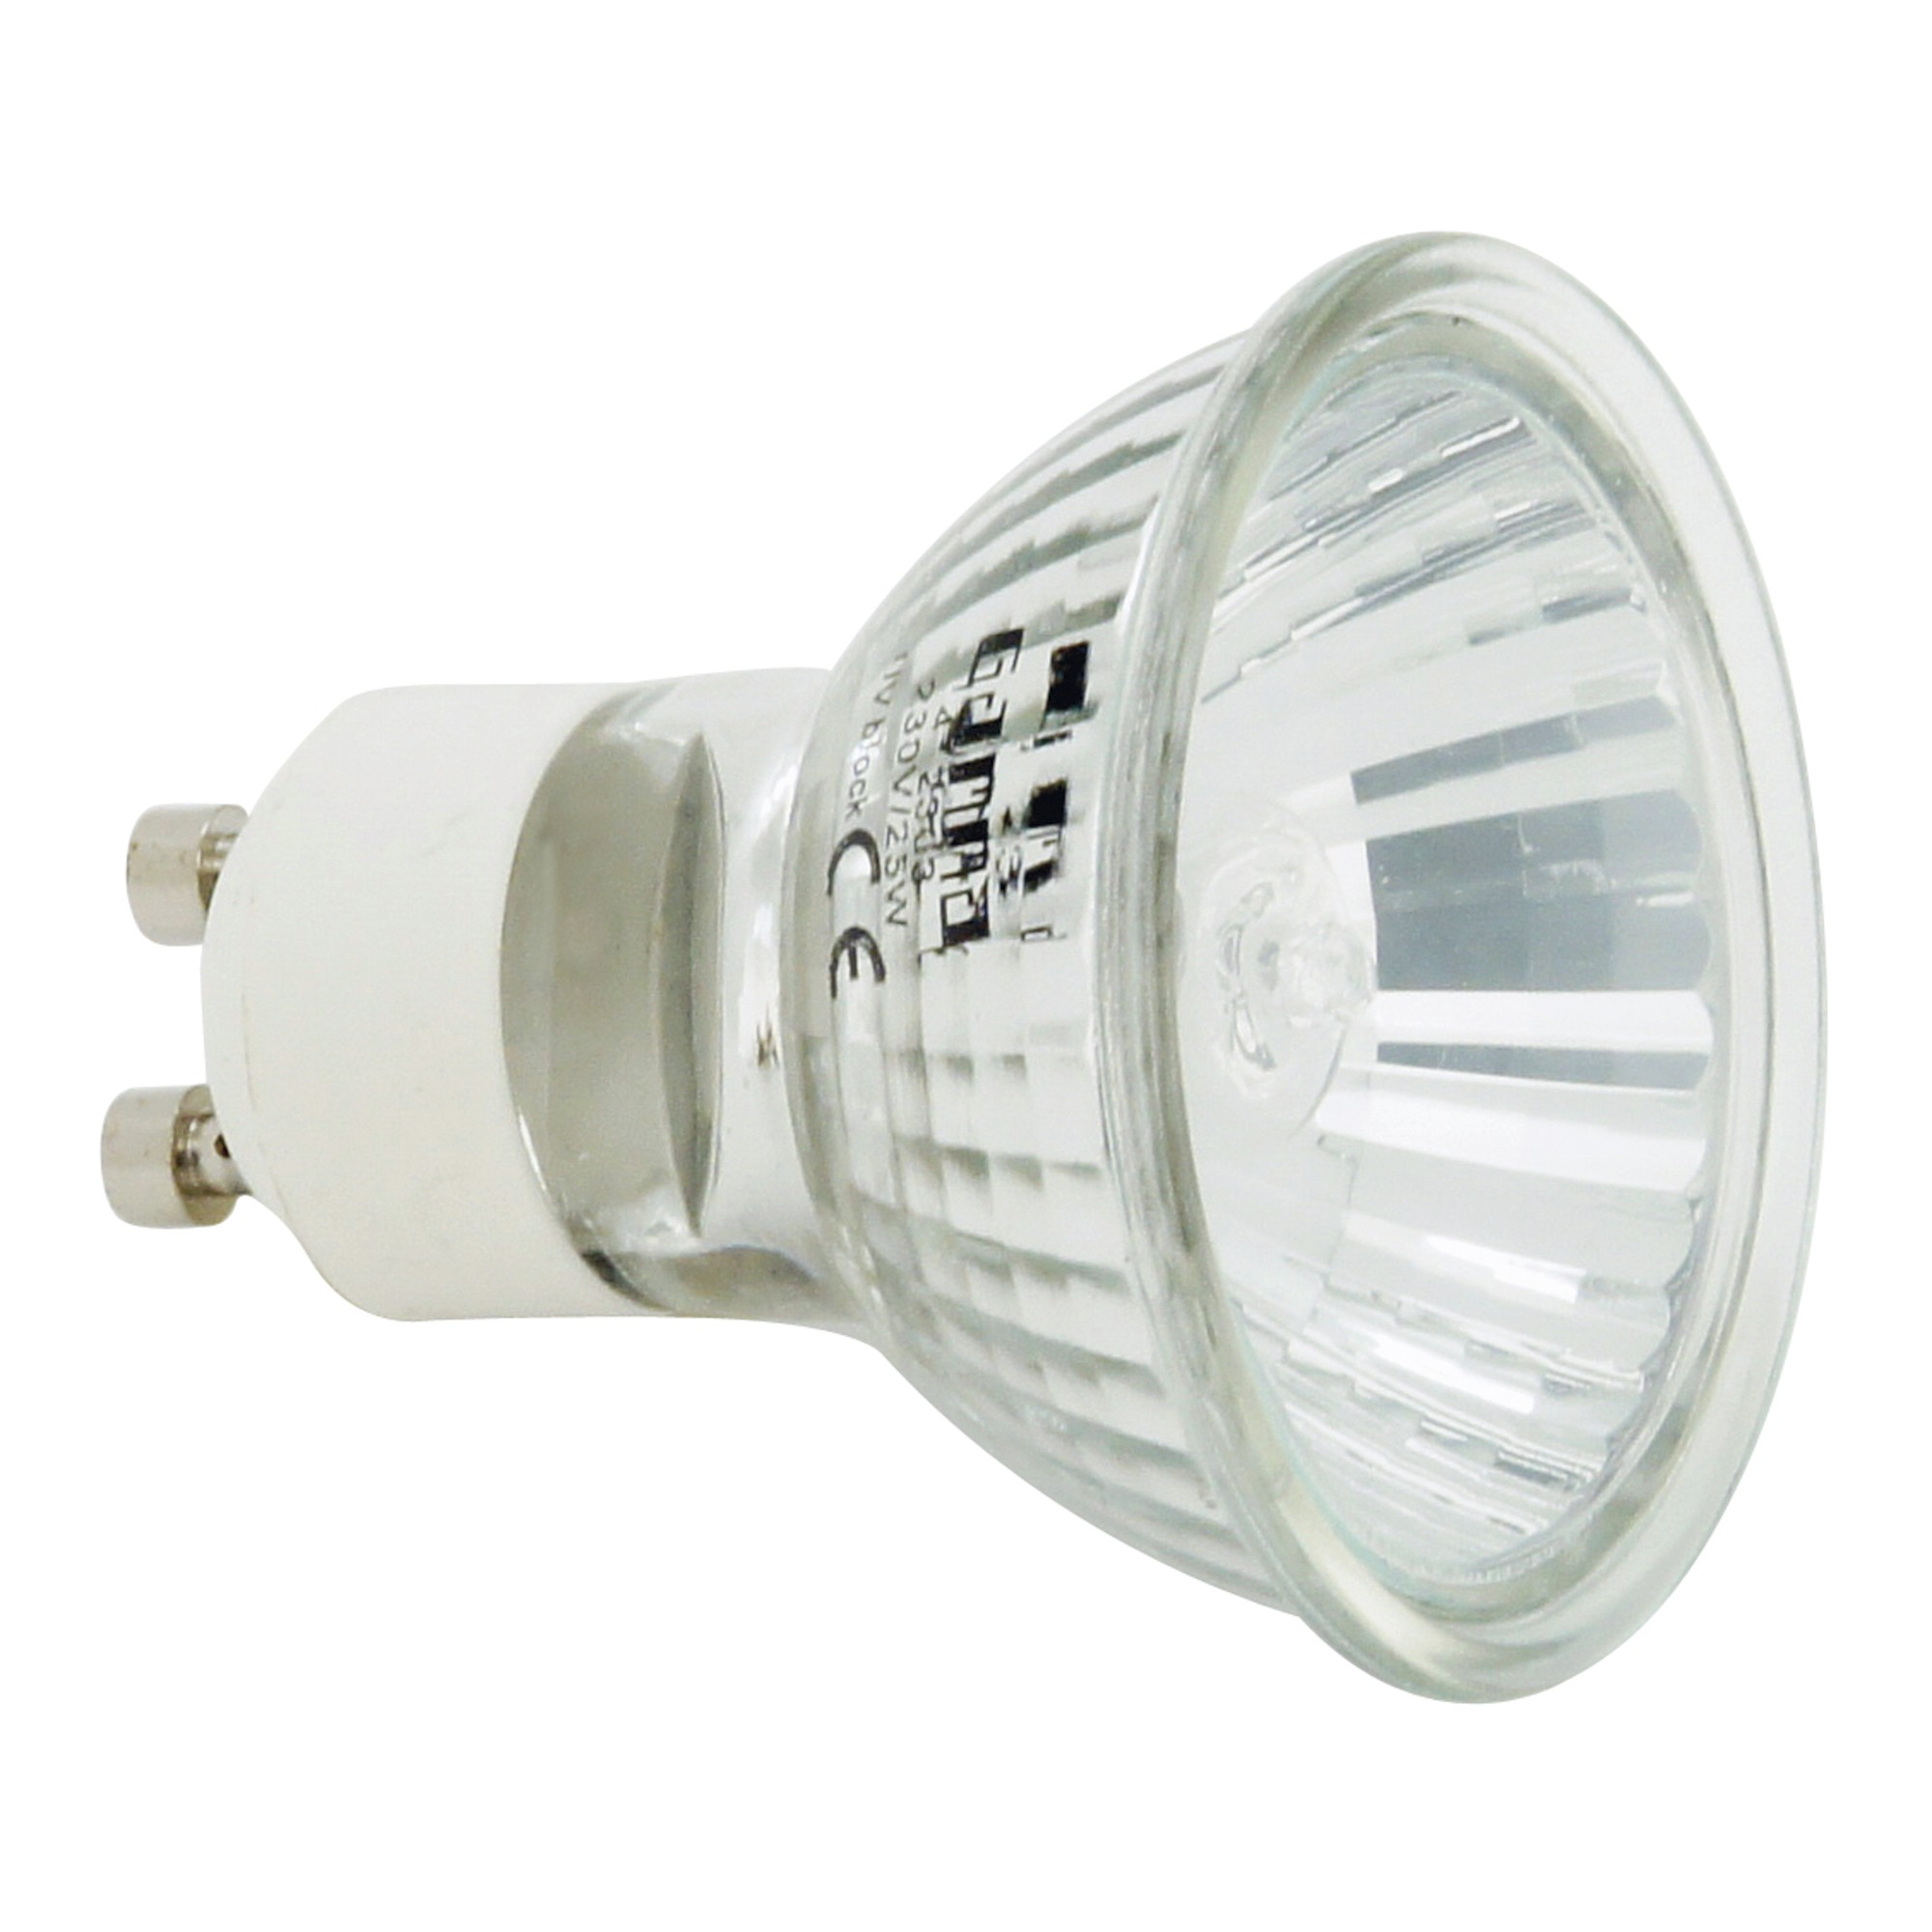 gamma led lampen pictures